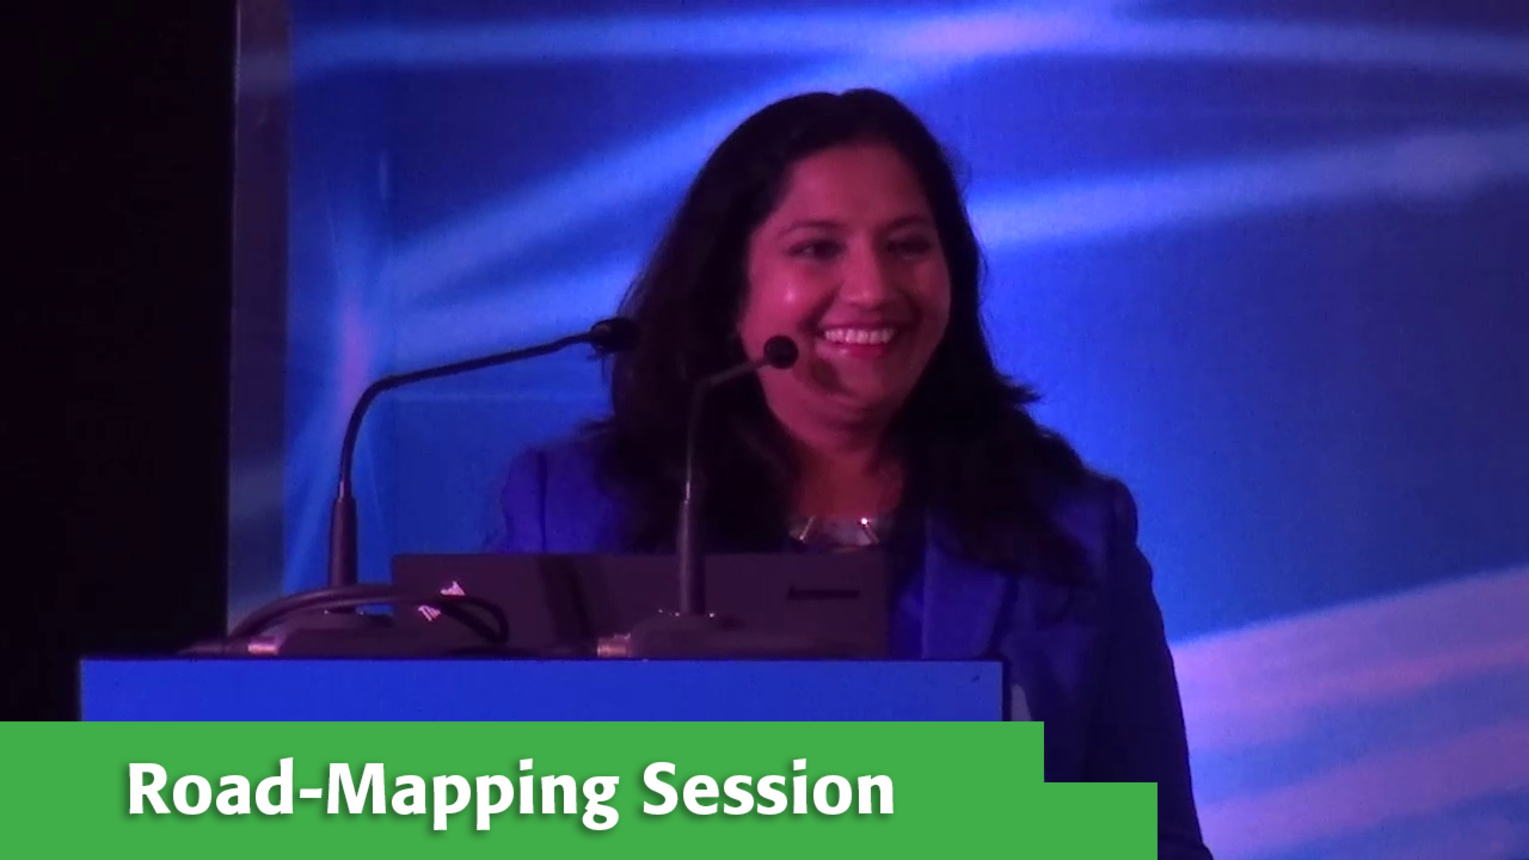 Road-Mapping Session with Deepa Prahalad at Internet Inclusion: Advancing Solutions, Delhi, 2016